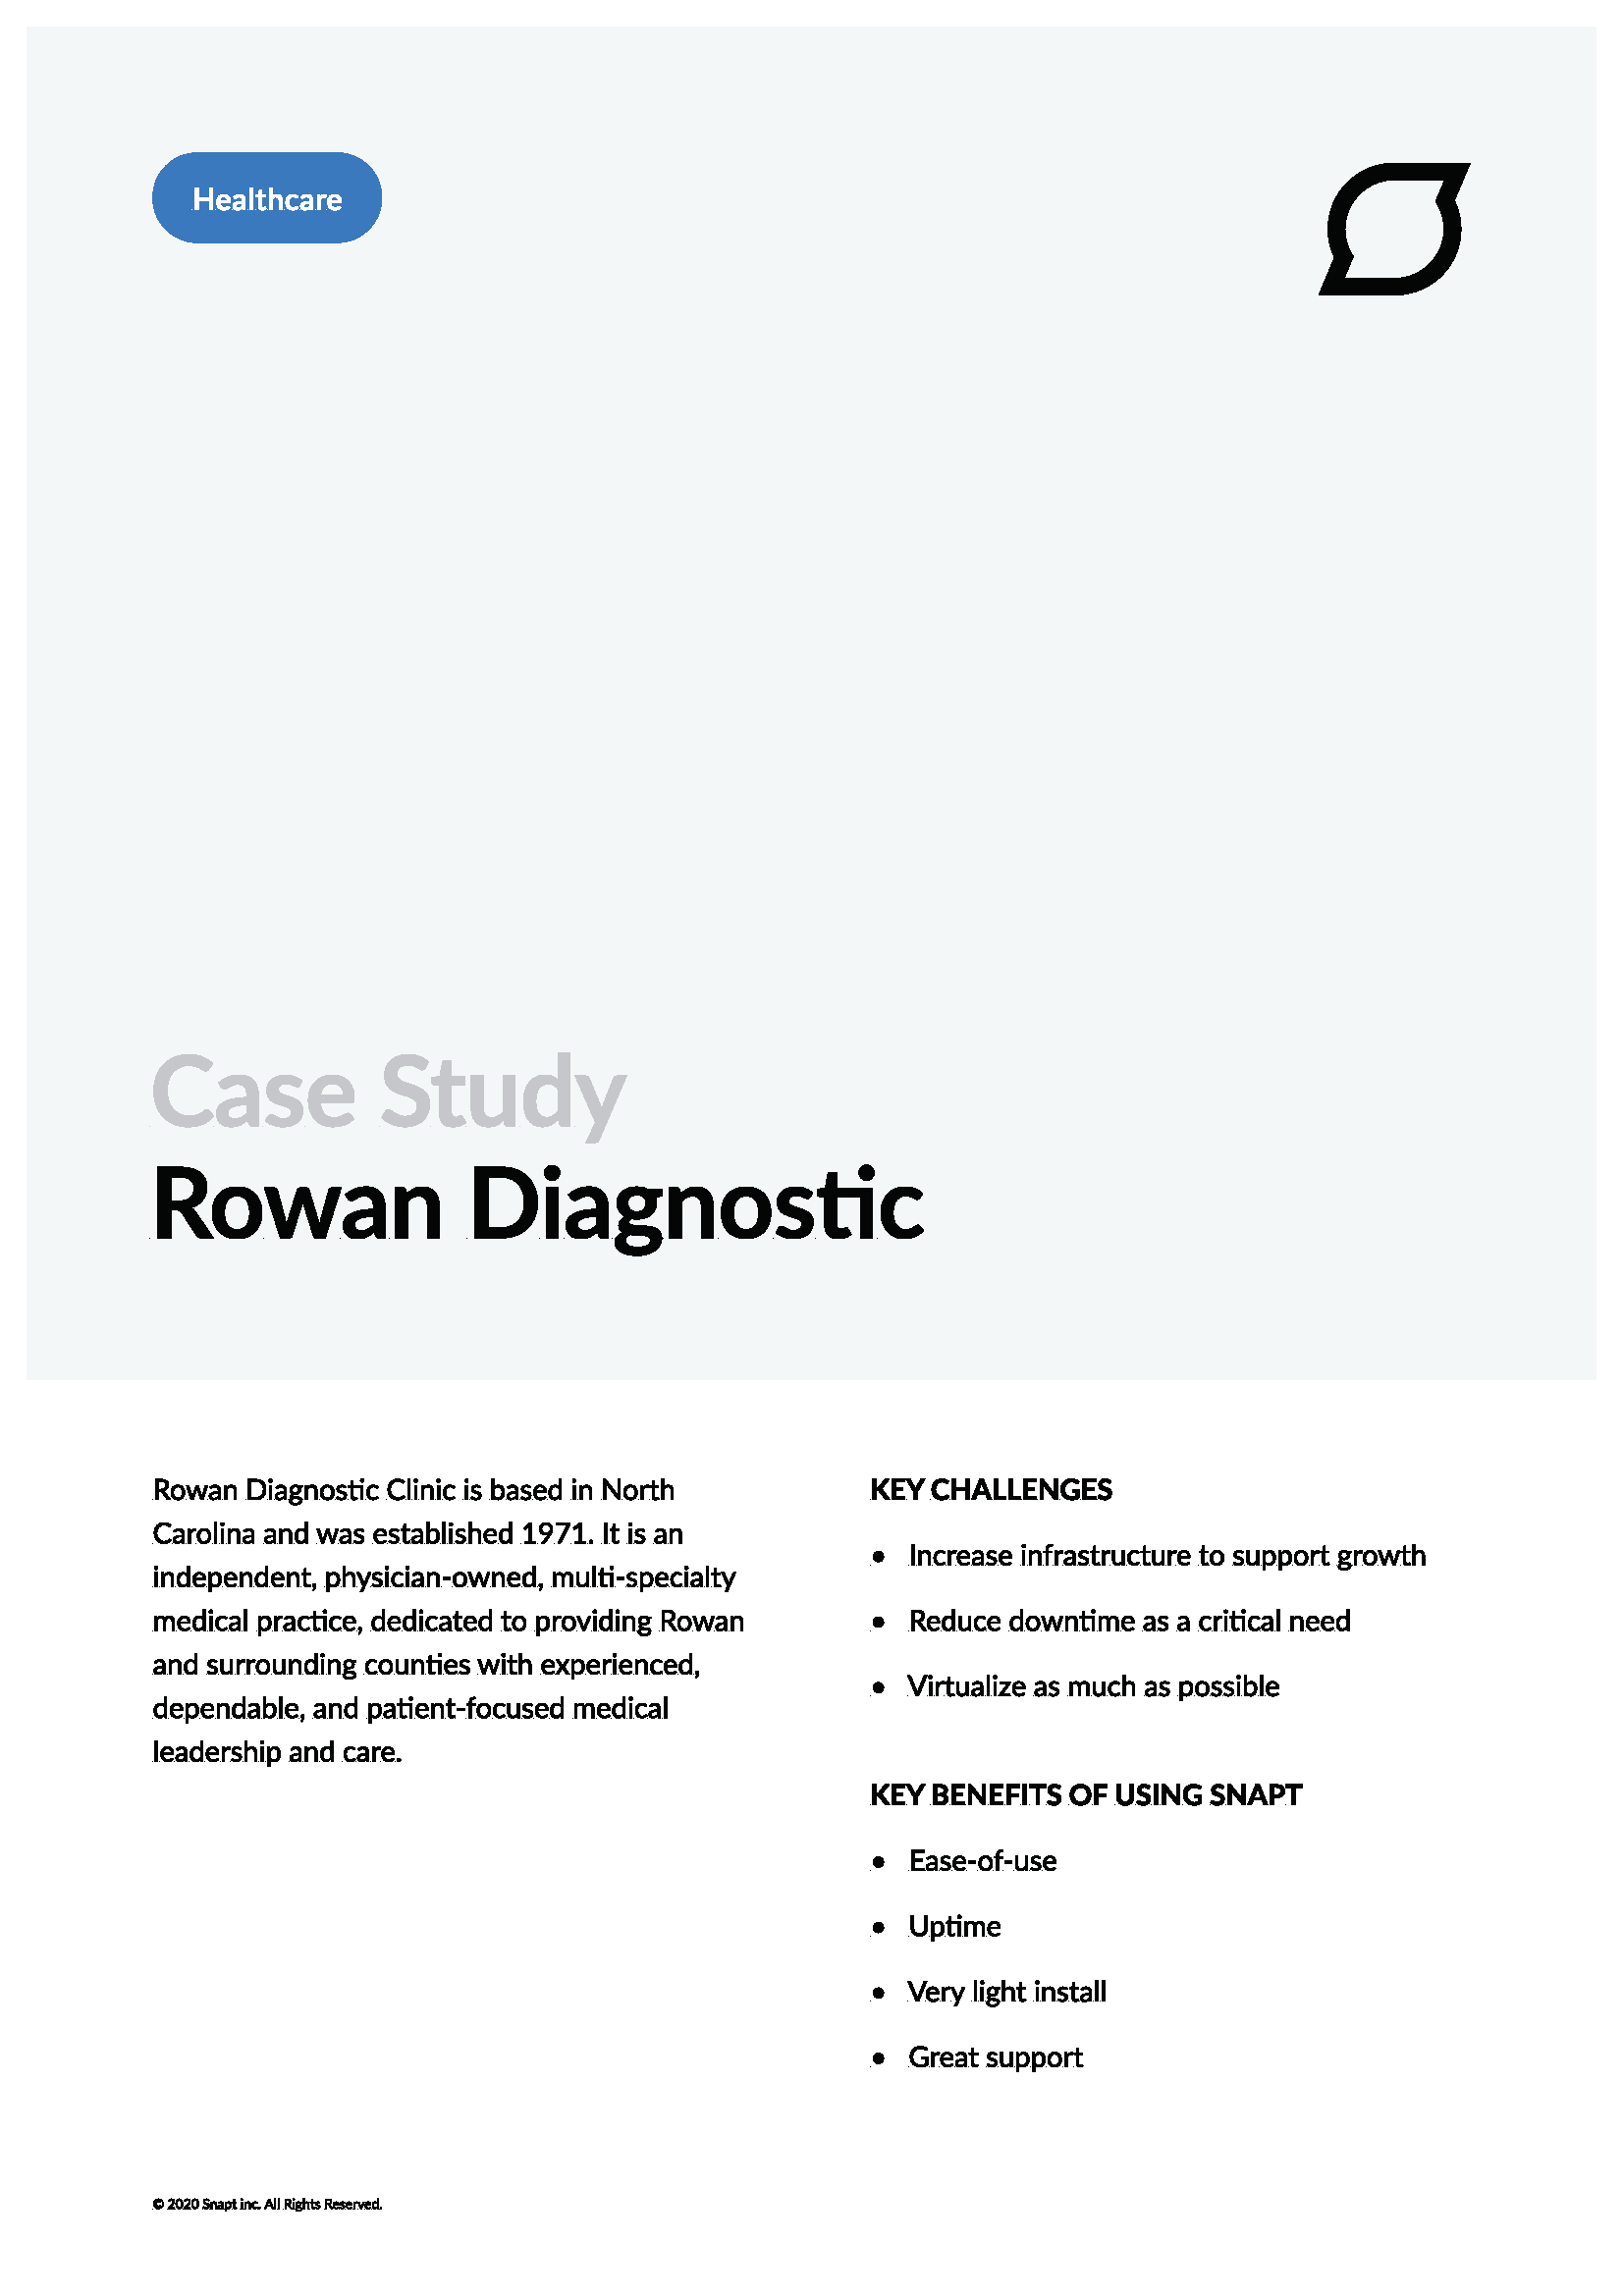 snapt-rowan-diagnostic-case-study